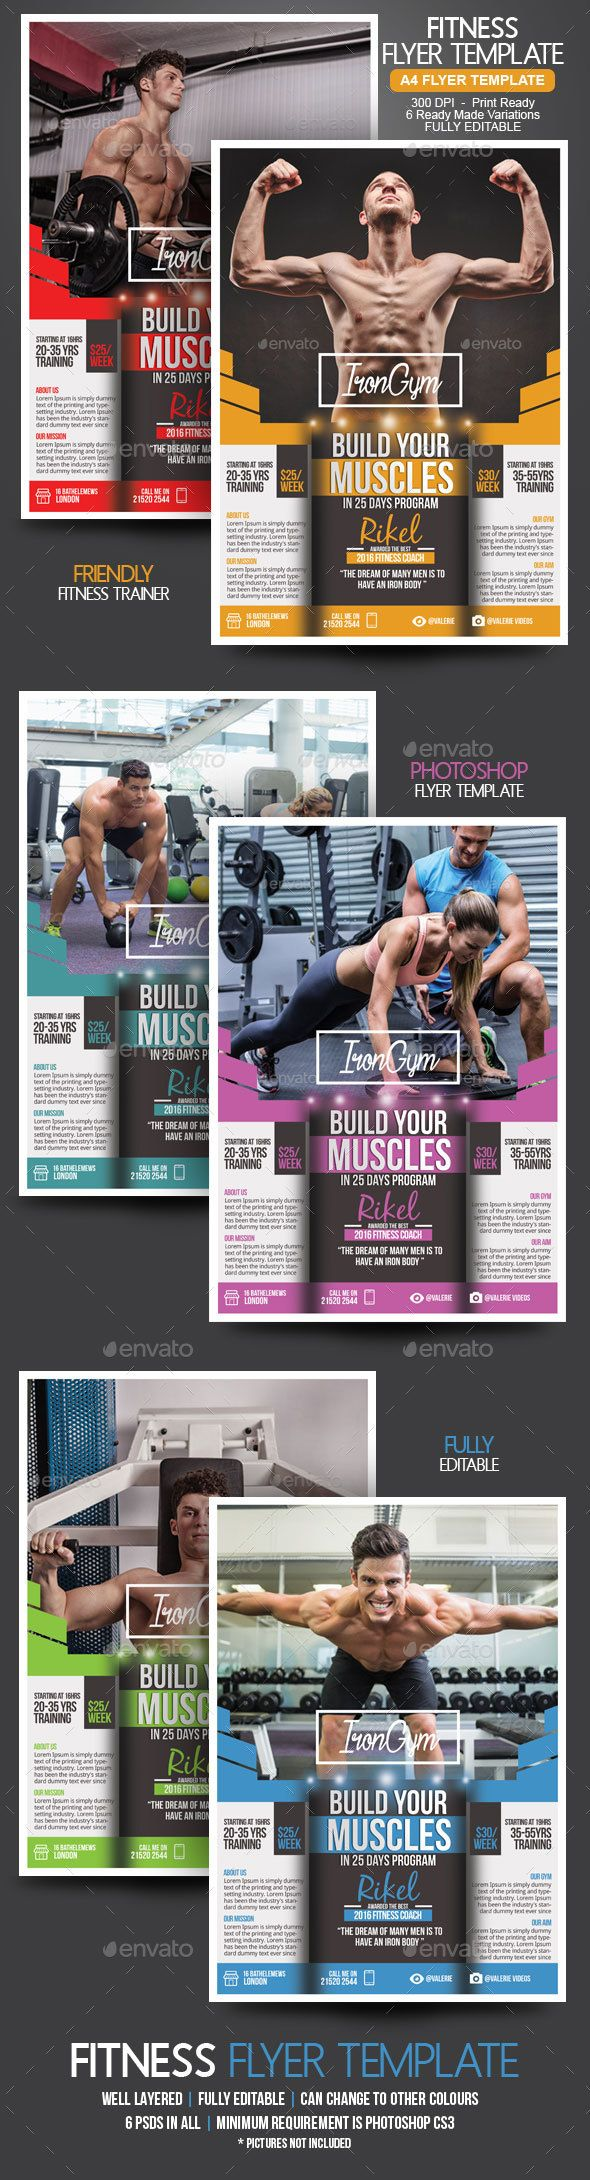 fitness gym flyer template flyer template gym and marketing flyers